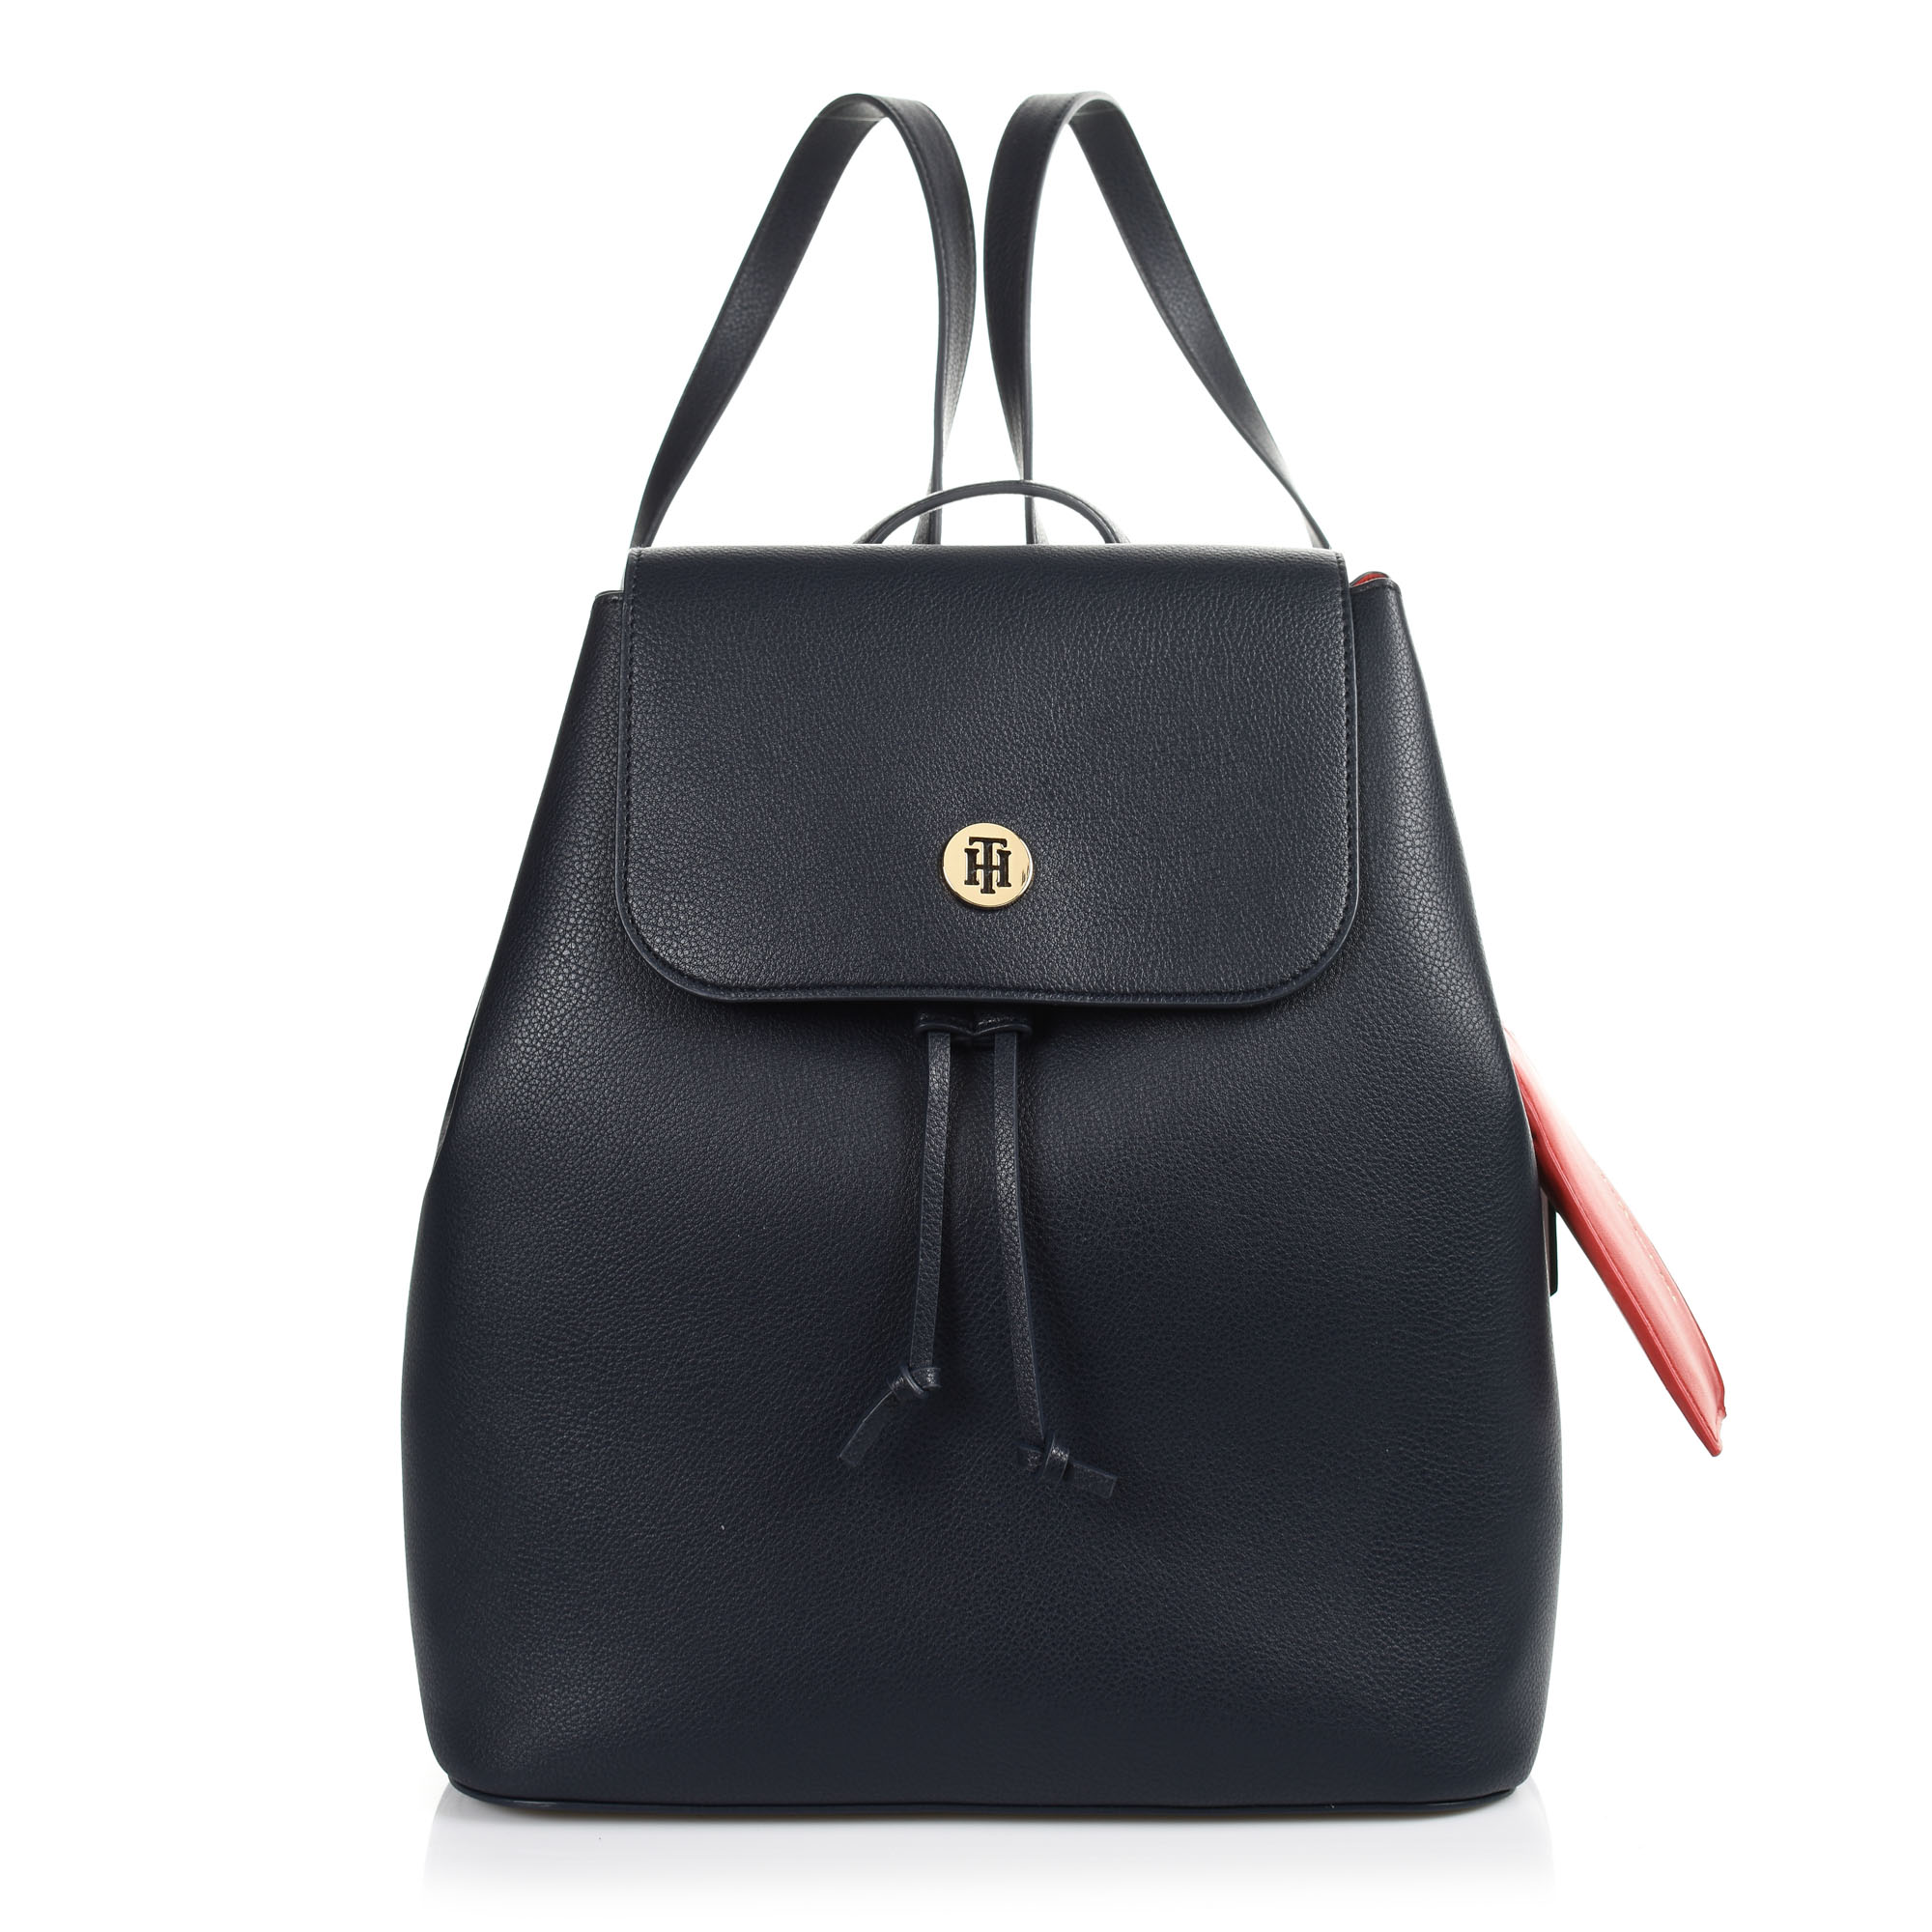 063071c514 Σακίδιο Πλάτης Tommy Hilfiger Charming Tommy Backpack AW0AW06457